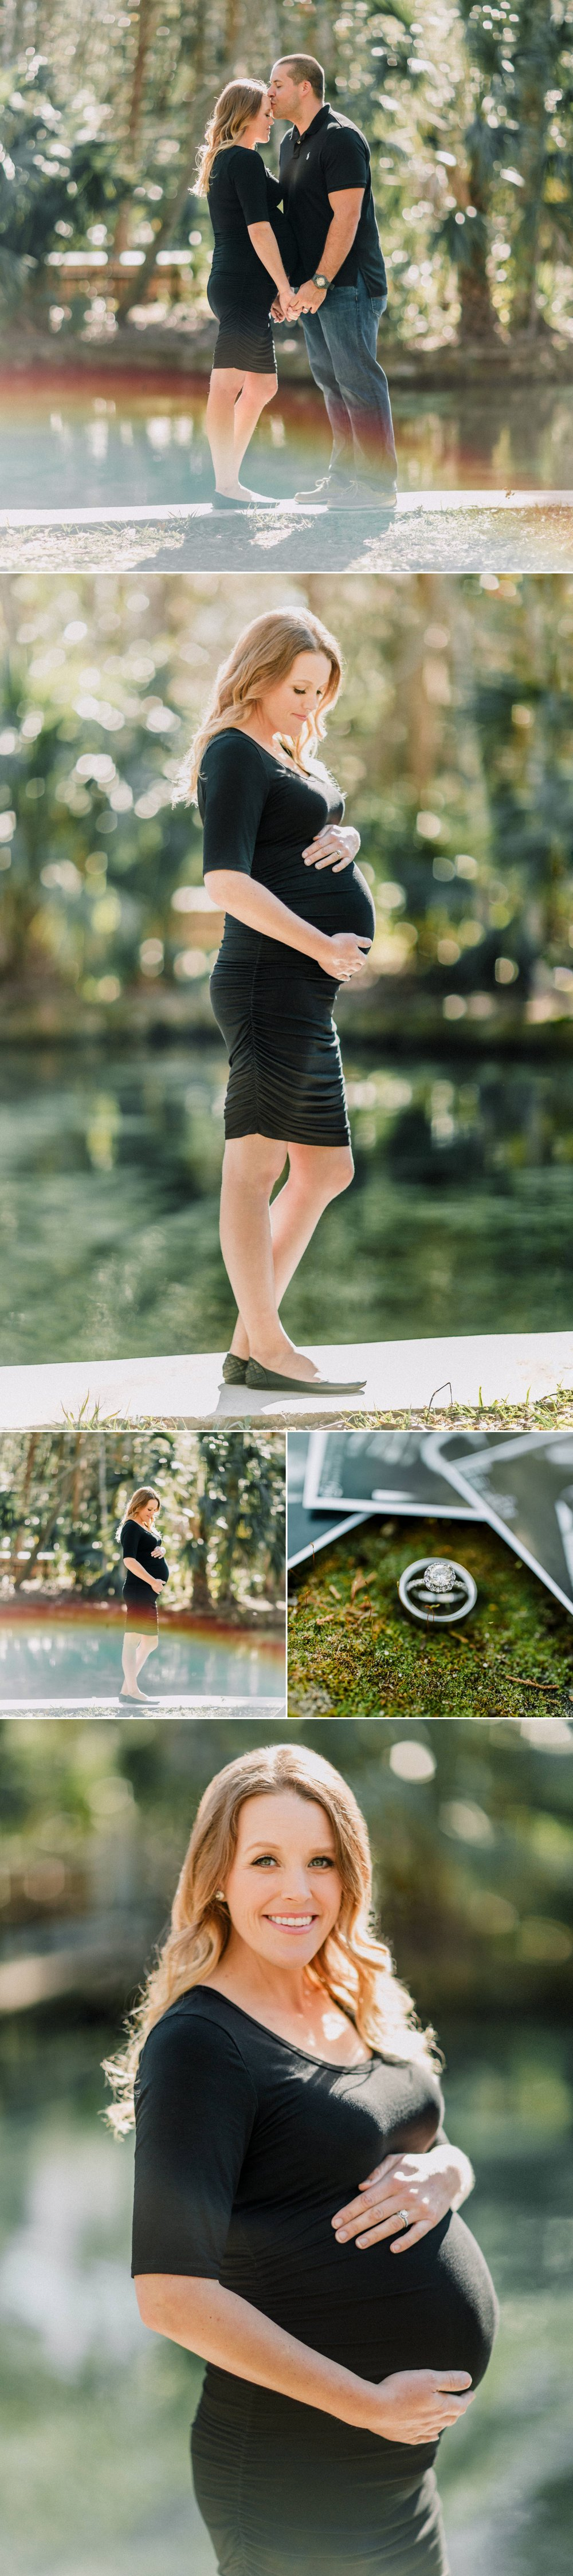 Blue_Springs_Wekiwa_State_Park_Winter_Park_Boho_Chic_Lifestyle_Maternity_Photos_by_ShainaDeCiryan.com9.jpg